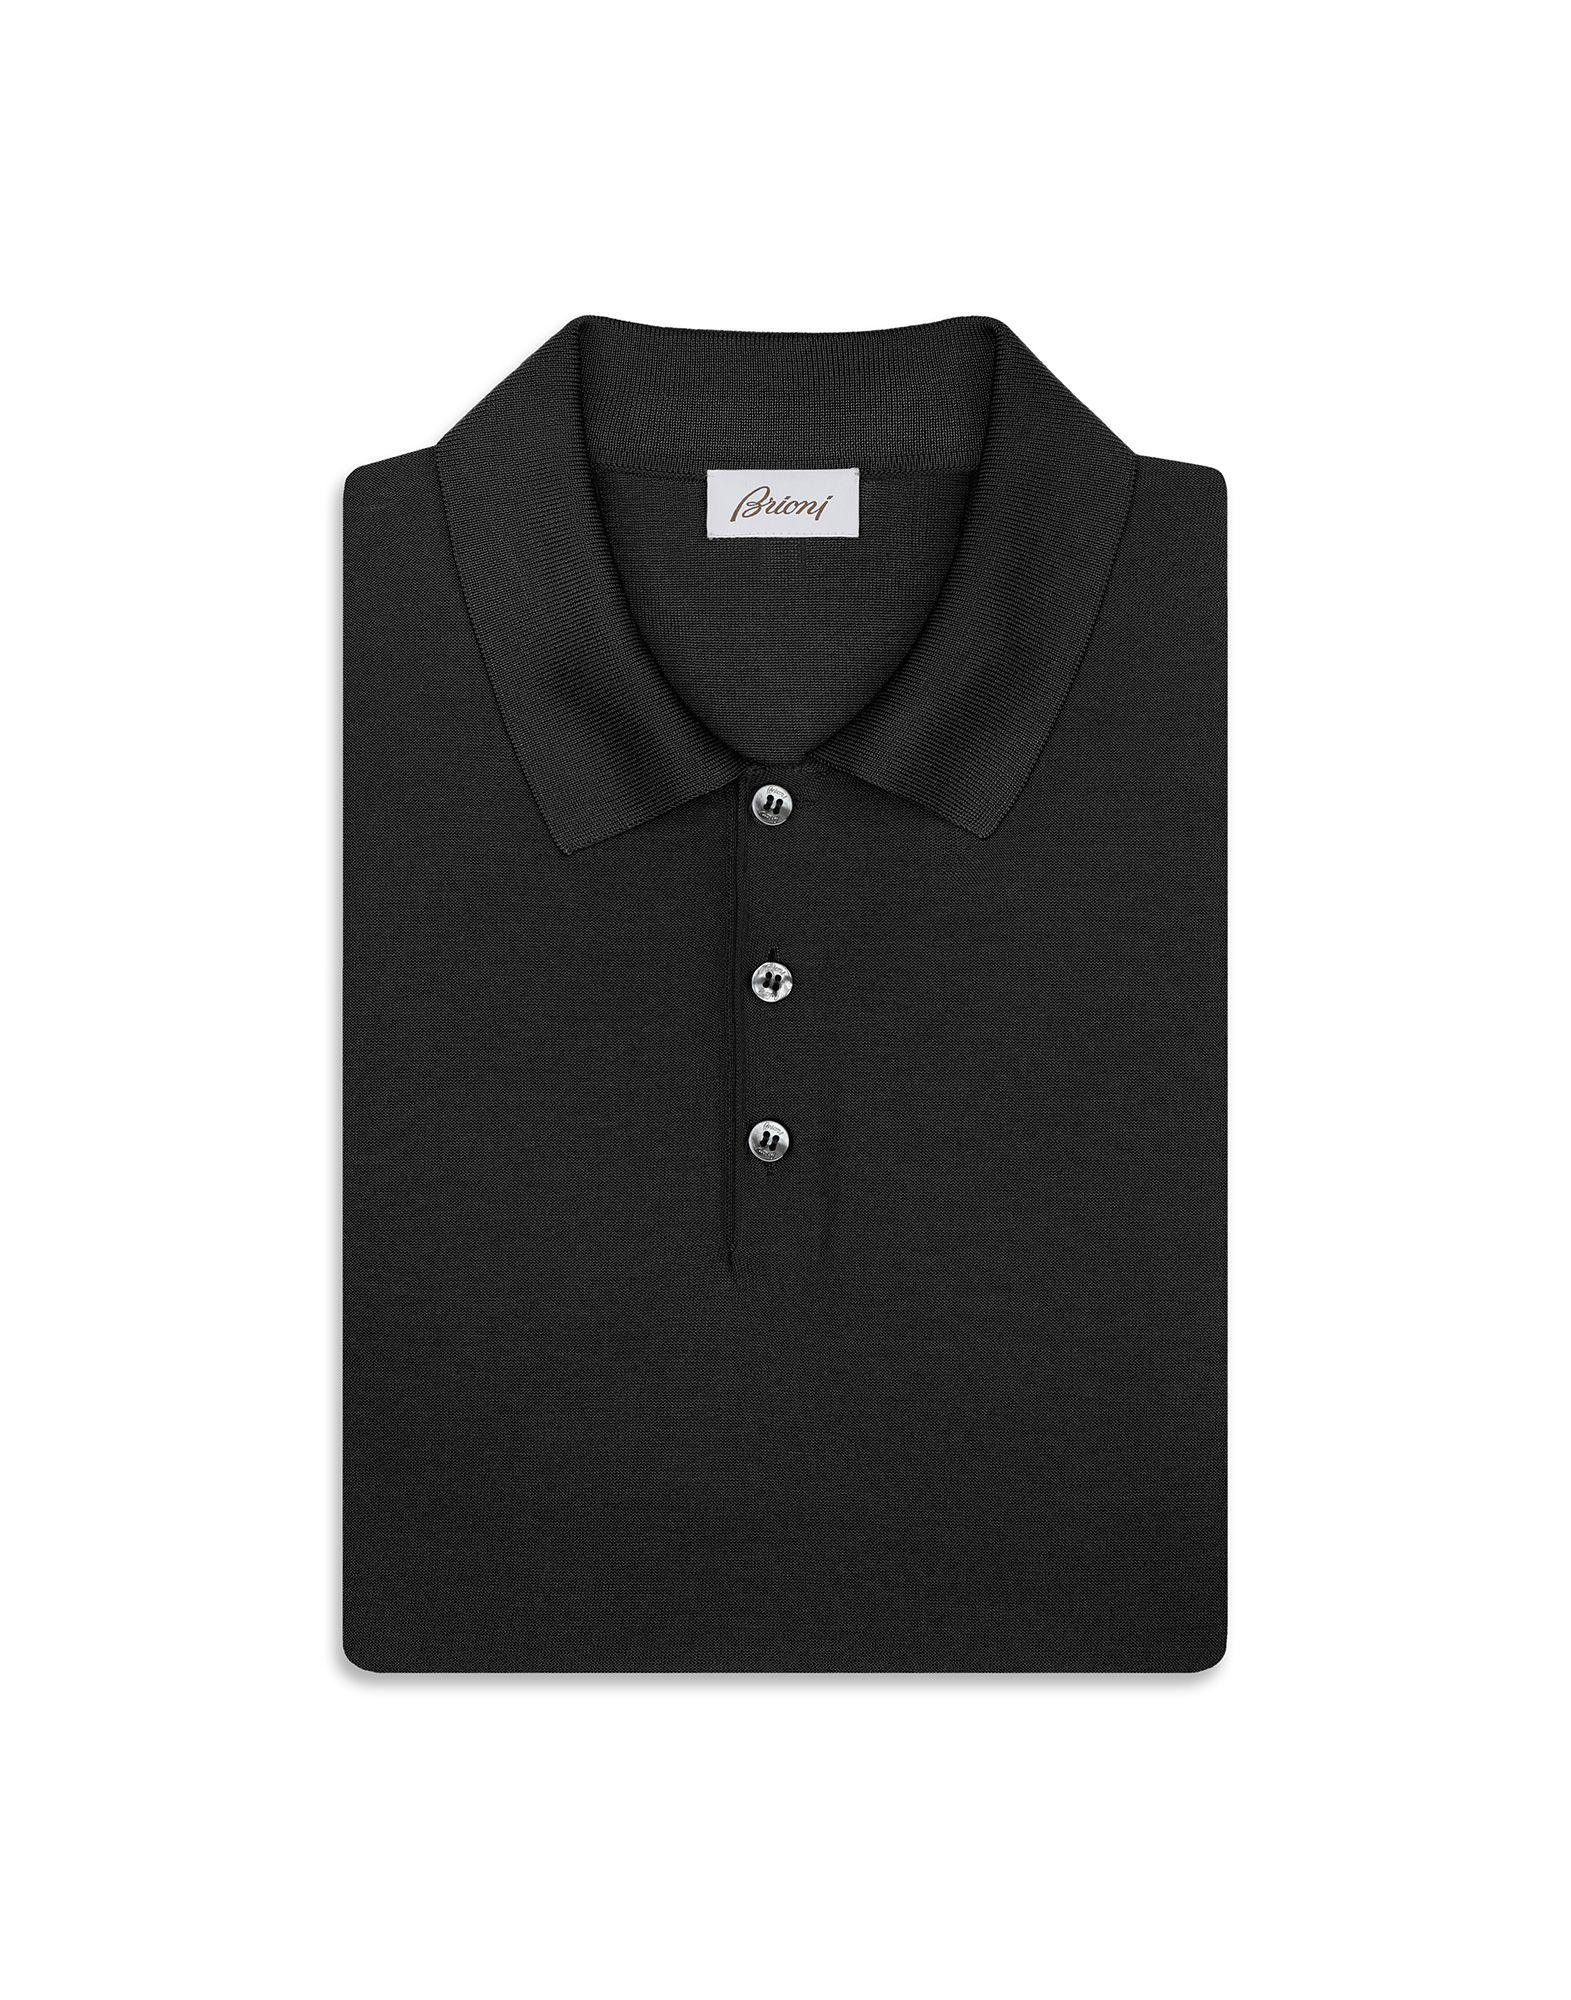 63796accd50 Lyst - Brioni Black Silk Polo Shirt in Black for Men